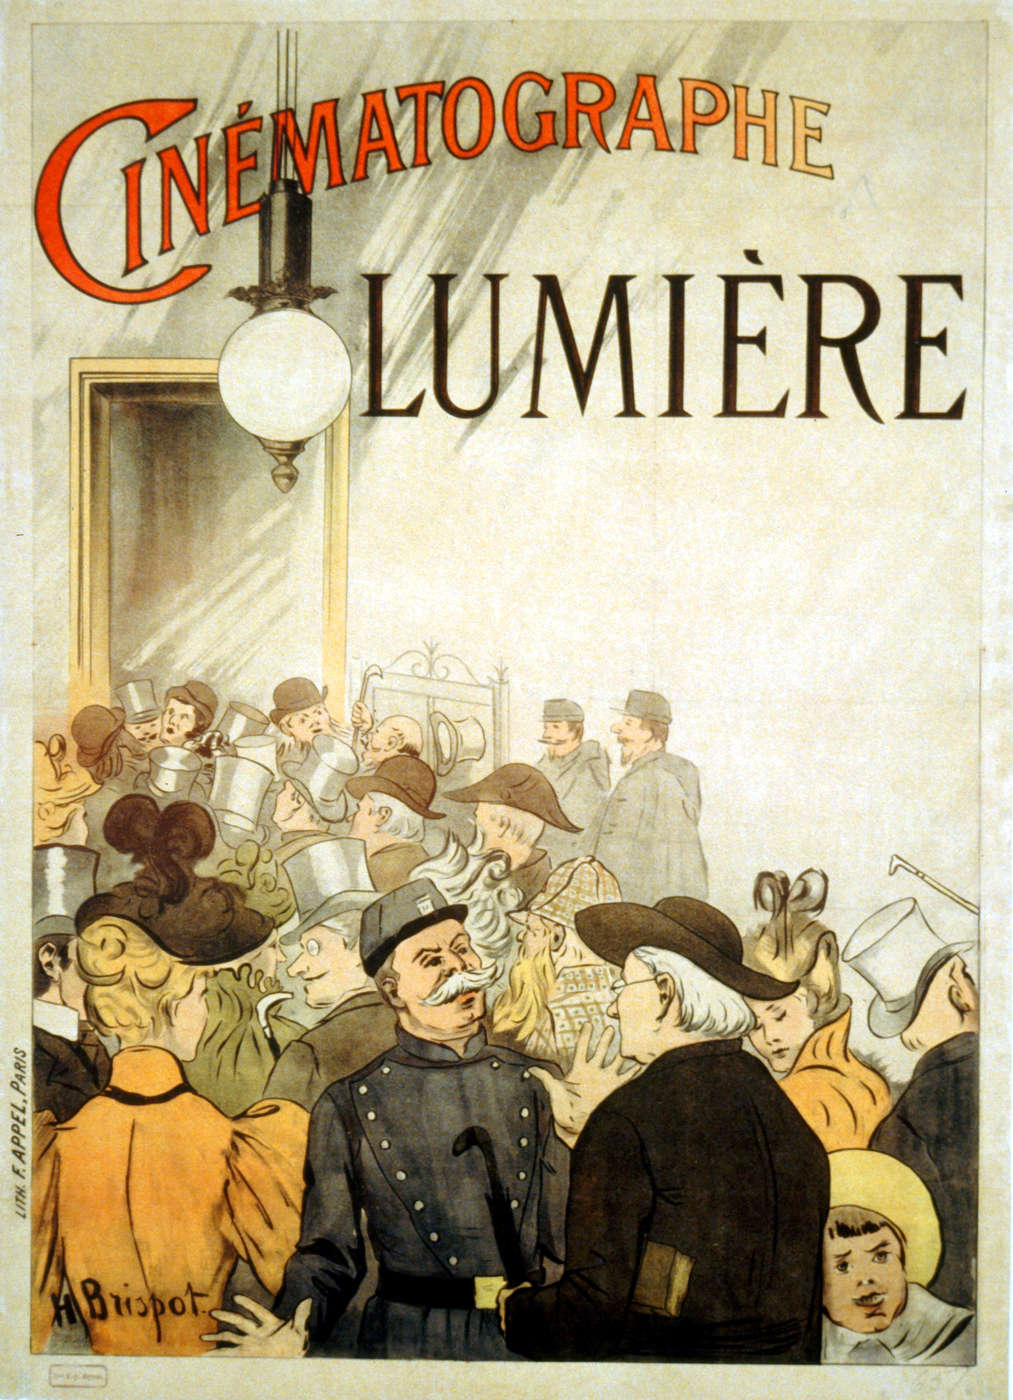 AUGUSTE & LOUIS LUMIERE: Fathers of the Cinema – Bill Dobbins On